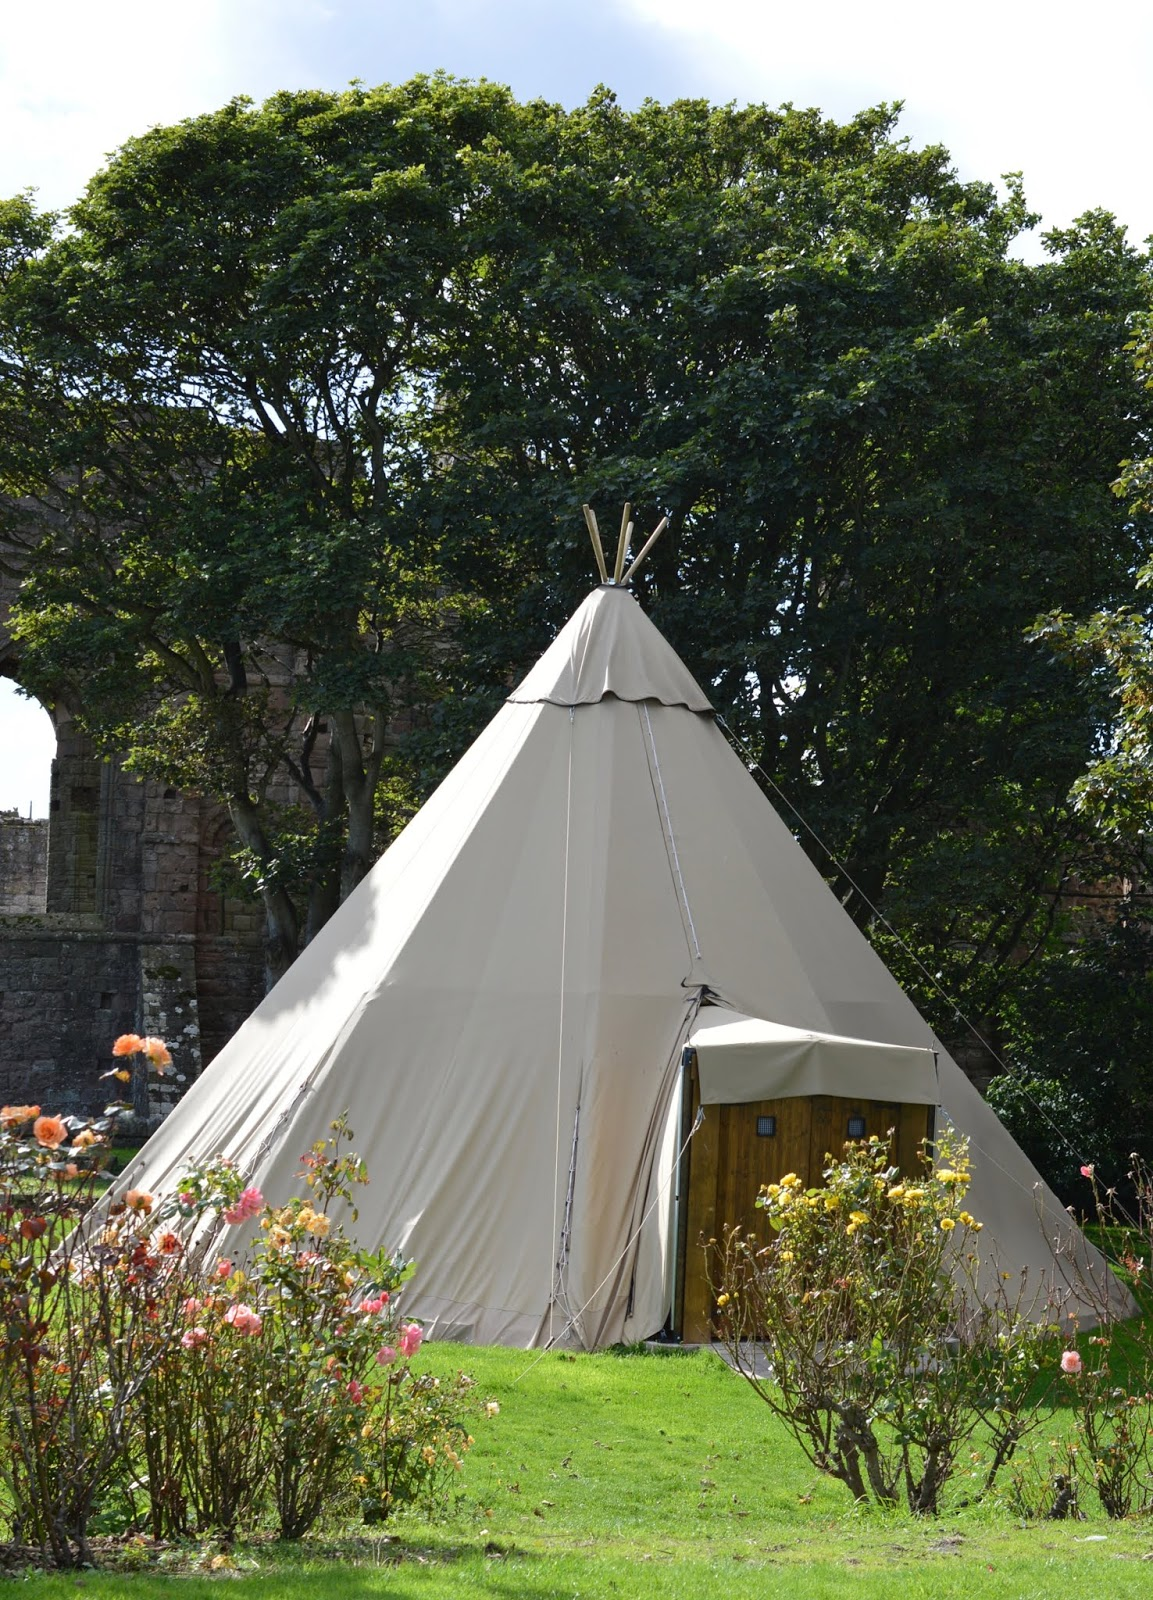 The Holy Island of Lindisfarne, Northumberland - what to see and do during a half day visit - the manor house hotel oyster bar tipi